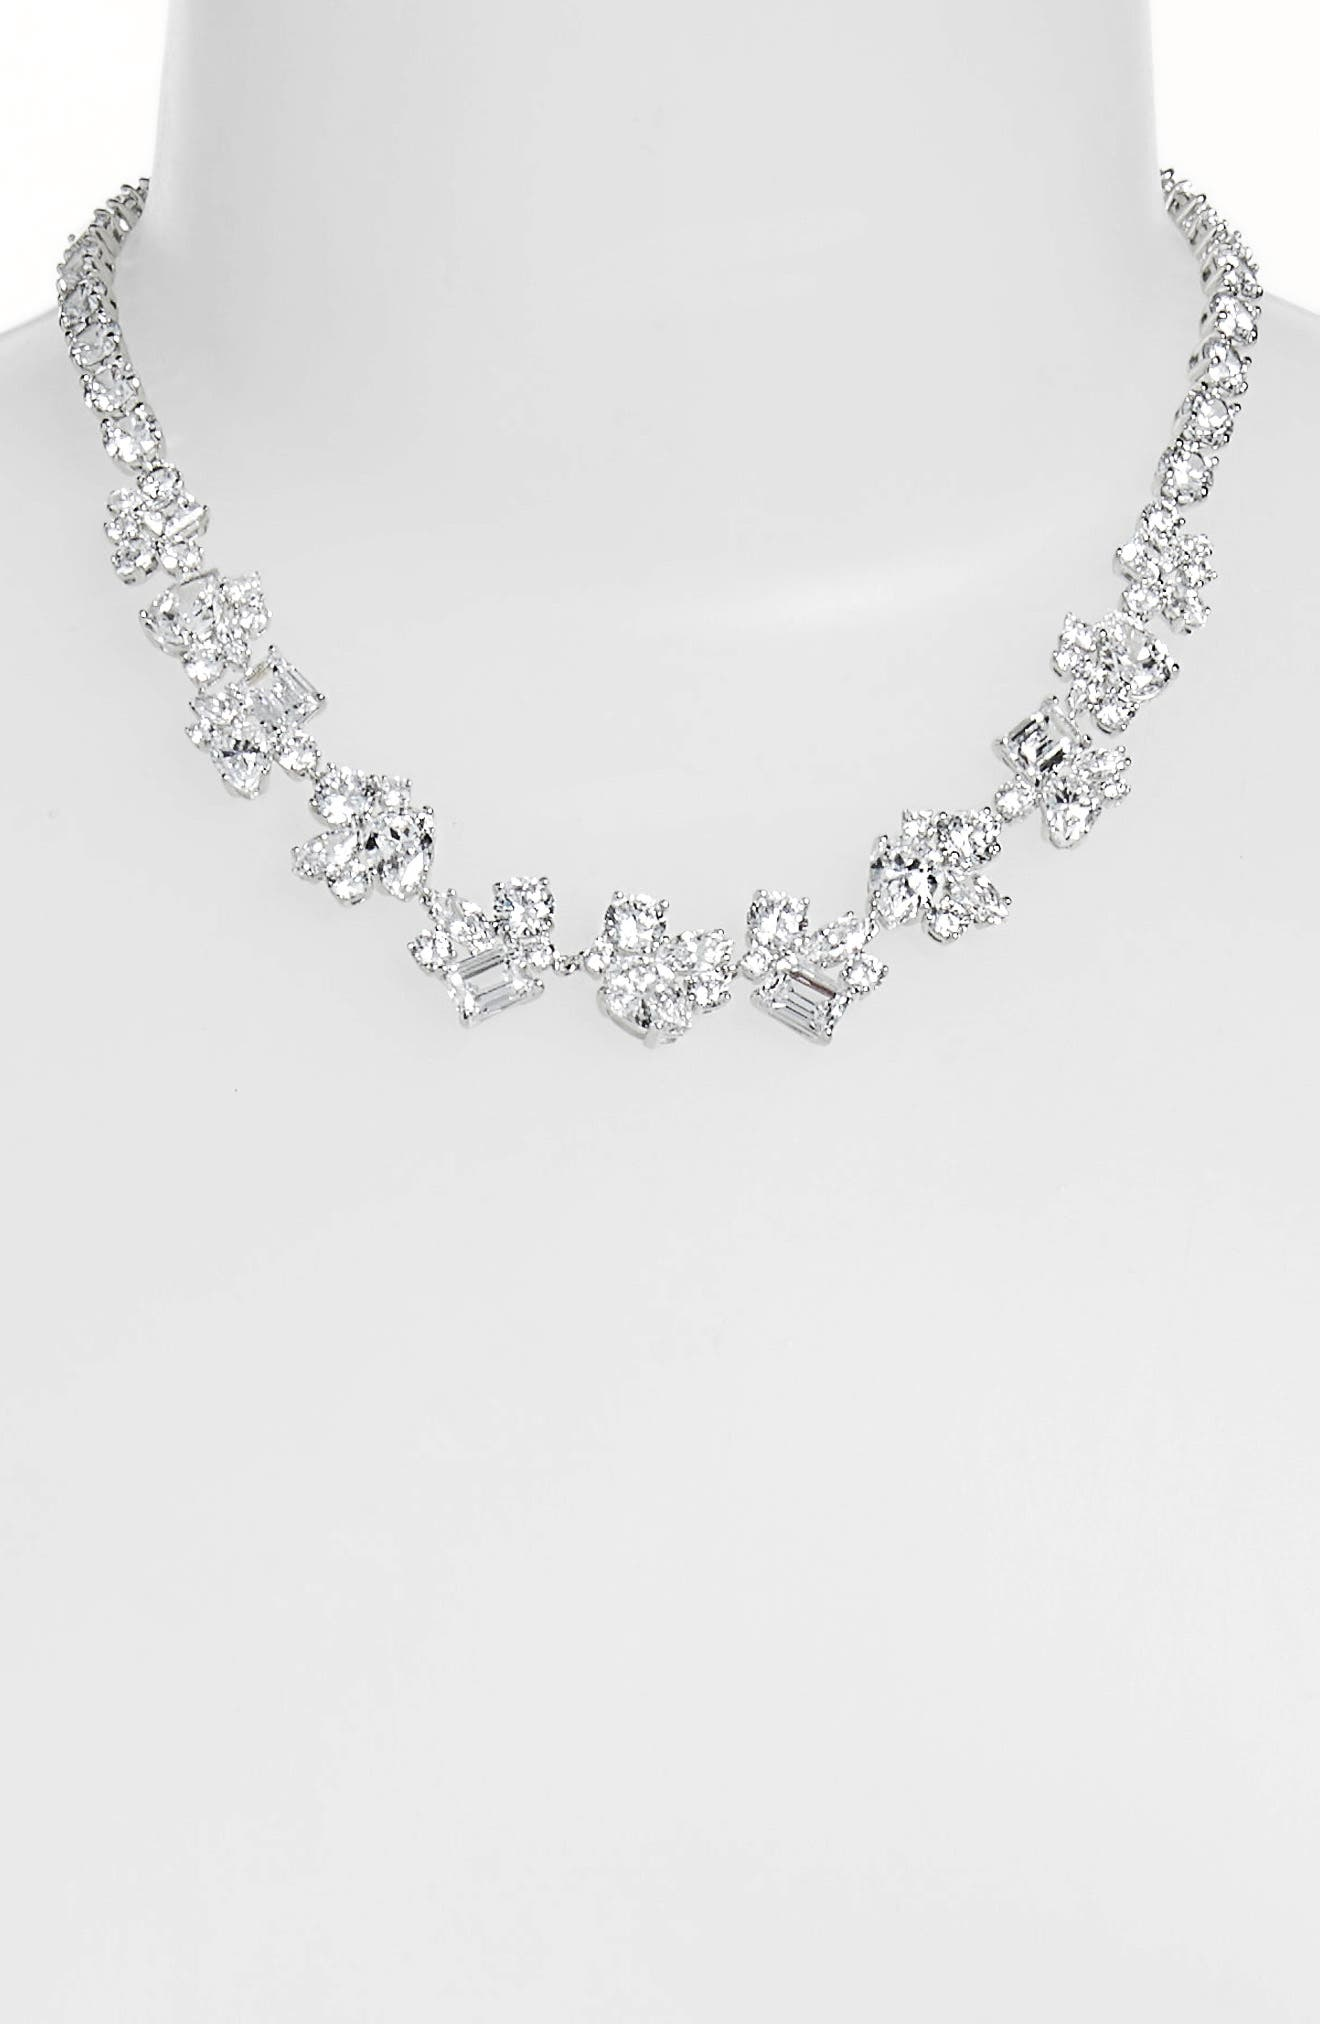 Cluster Cubic Zirconia Collar Necklace,                             Alternate thumbnail 2, color,                             CLEAR- SILVER